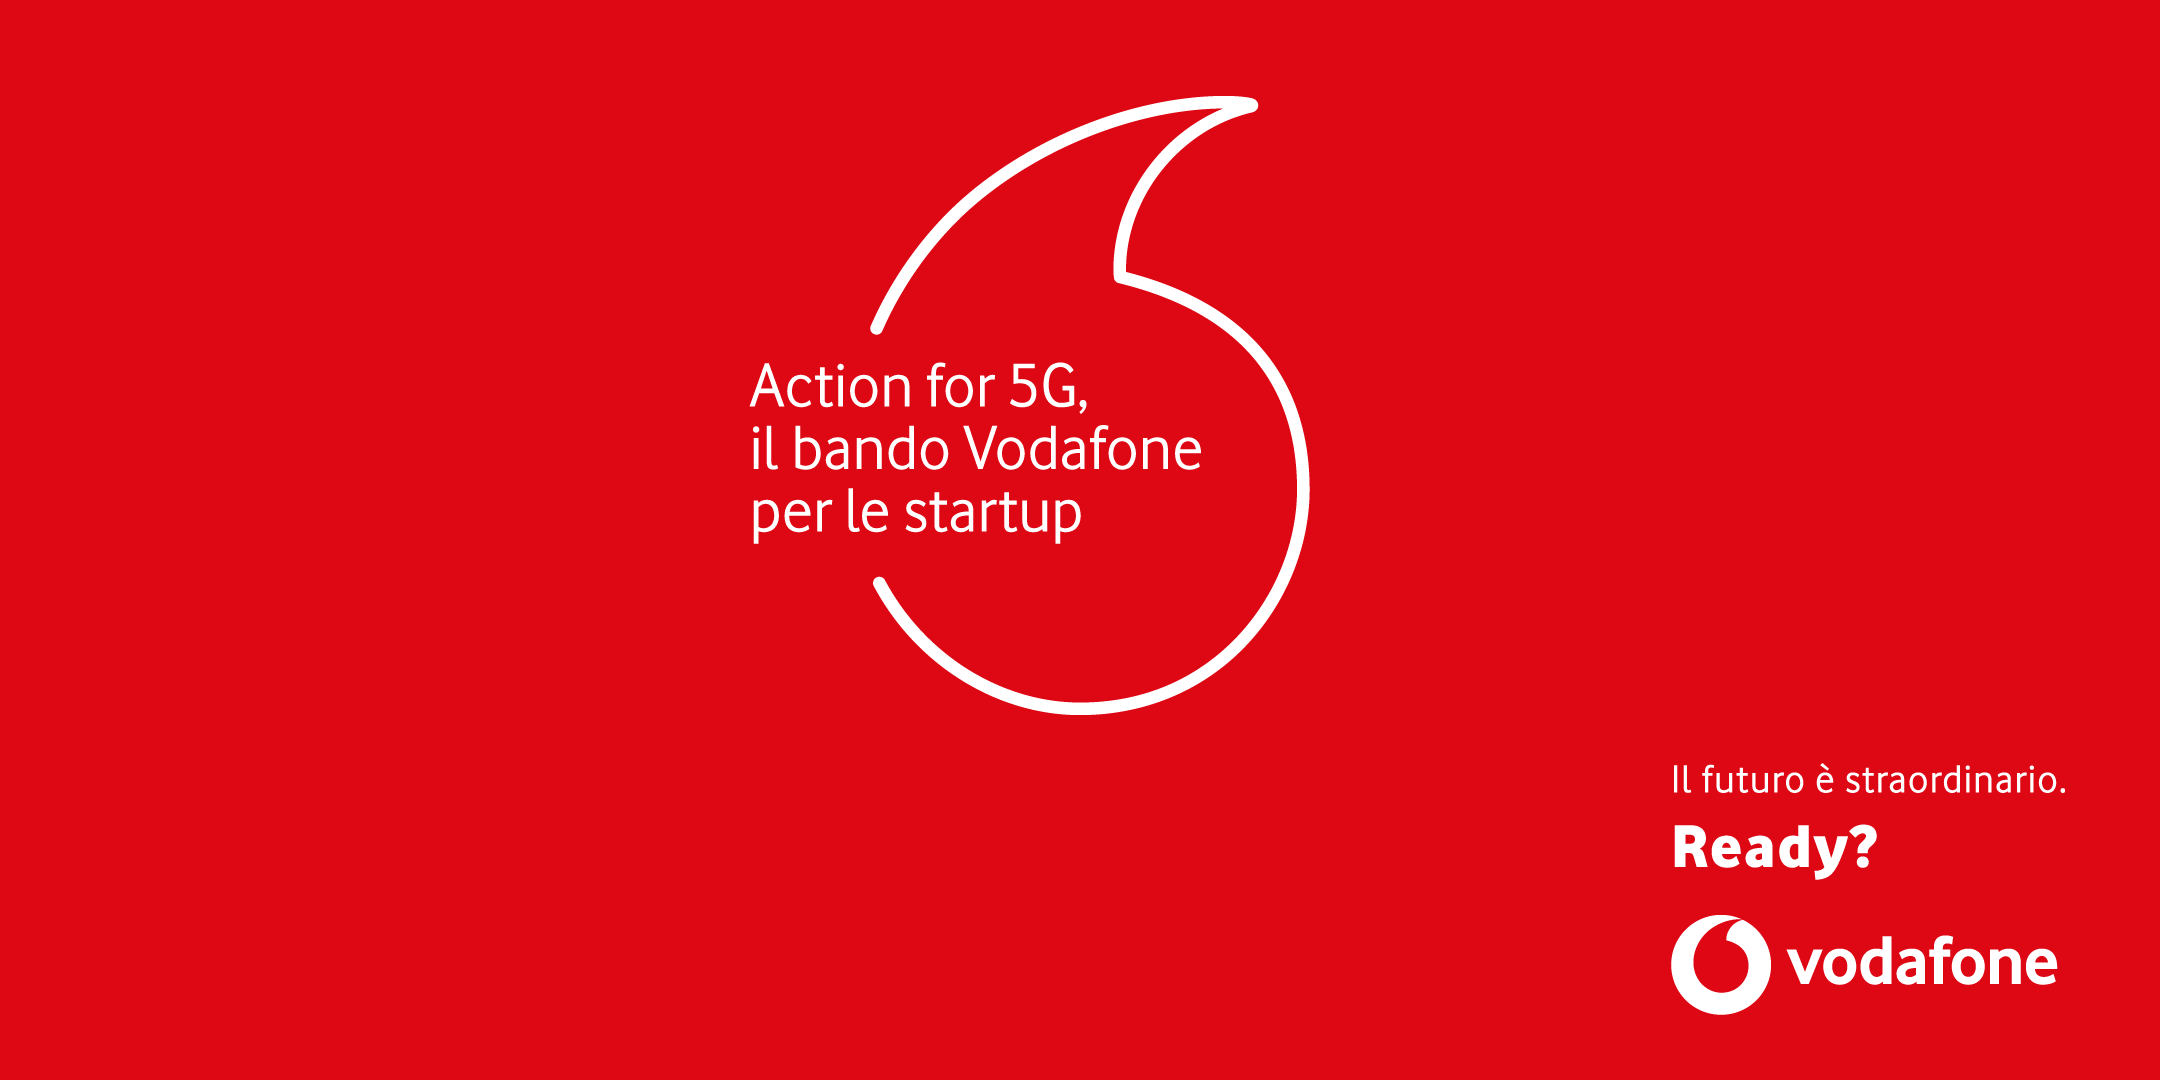 secondo bando Action for 5G